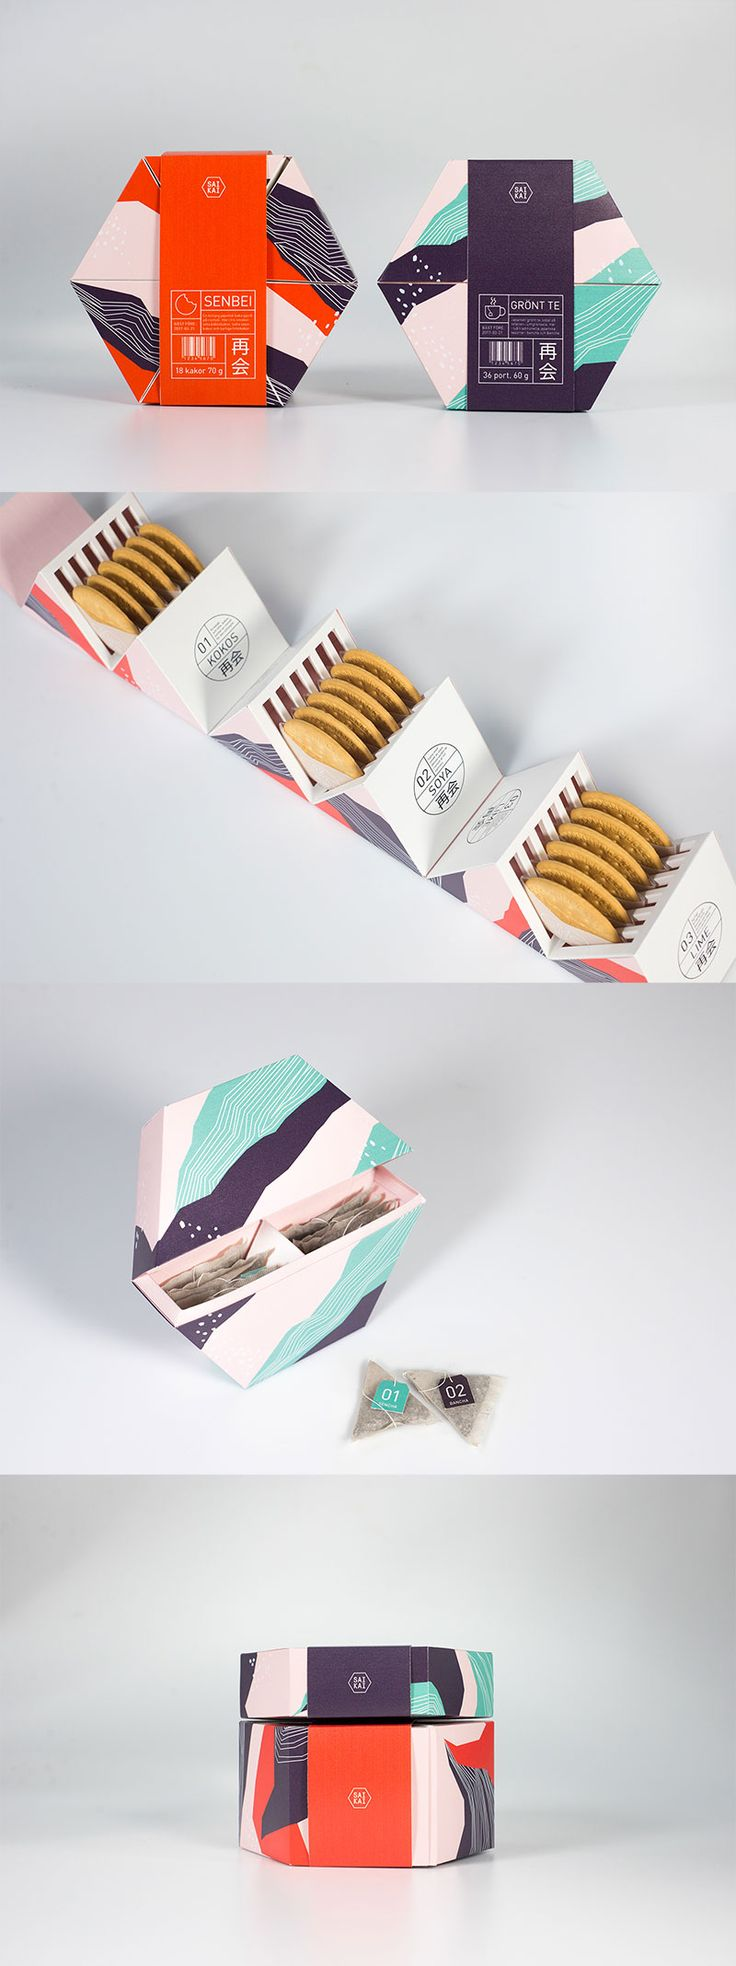 Saikai packaging. The reason i picked this package is because it is complex and has multiple views that you can see the design in